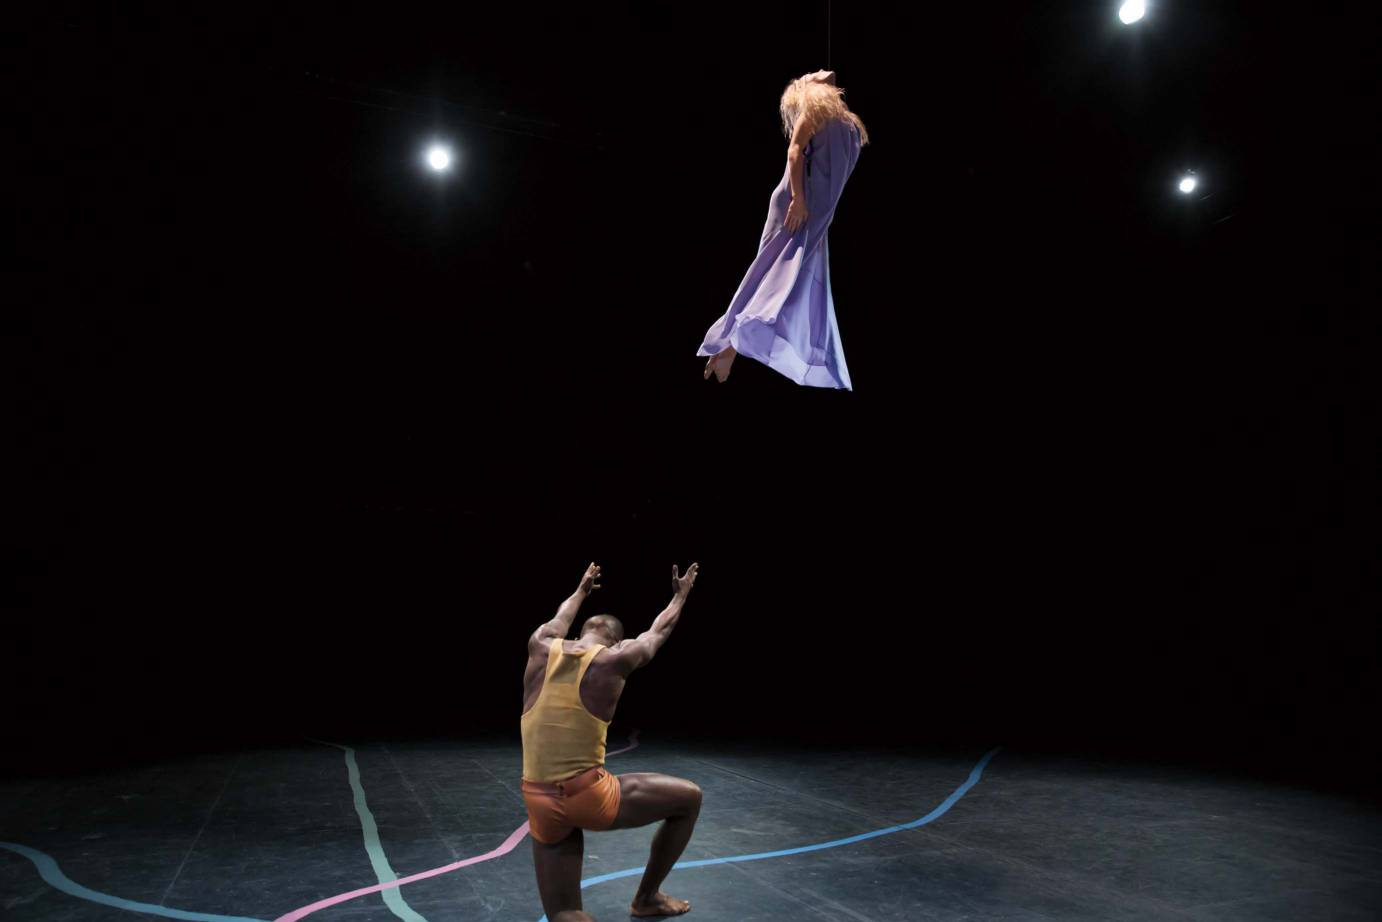 A male dancer propelling a female dancer clad in a purple dress into the air.